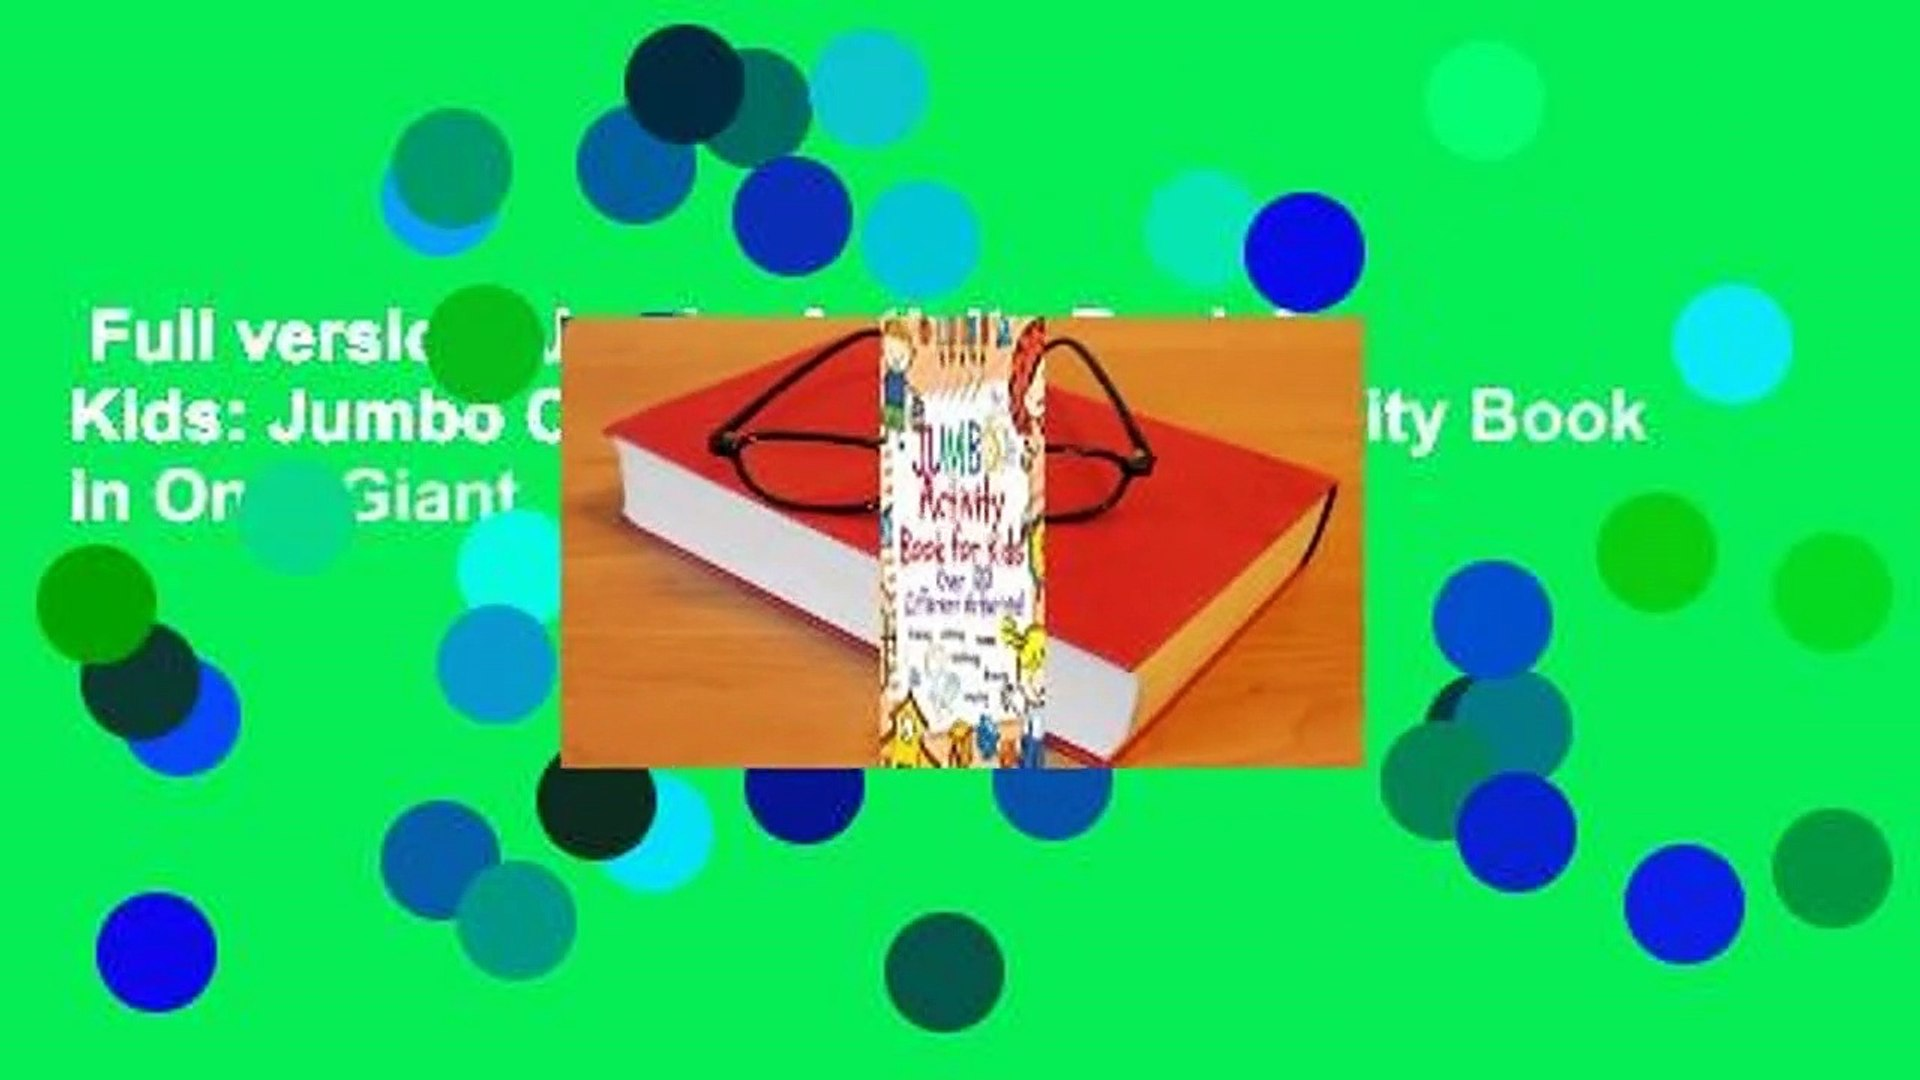 Full version  Jumbo Activity Book for Kids: Jumbo Coloring Book and Activity Book in One: Giant